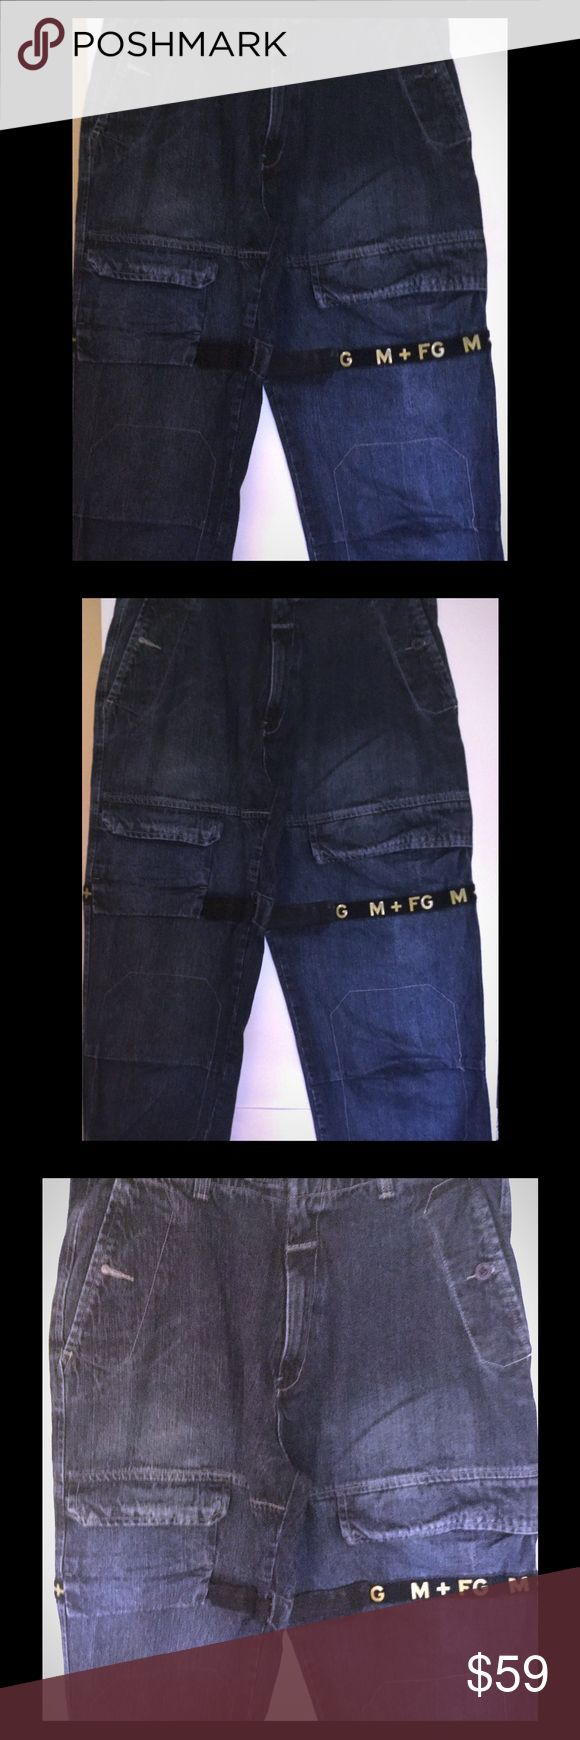 """Marithe Francois Girbaud Jeans Shuttle Tape 34 VTG Men's Marithe Francois Girbaud Jeans Loose/Baggy tag Size 38,Actual measurements: Waist 34 inches (34X32) 100%Cotton, 6 pockets Waist 17"""" across (approx. 34"""" around) Inseam 32 Rise13"""" Gently worn, small tear on hem See pictures. Coming from a free smoking environment! Stock 8#23 Marithe Francois Girbaud Jeans Relaxed"""